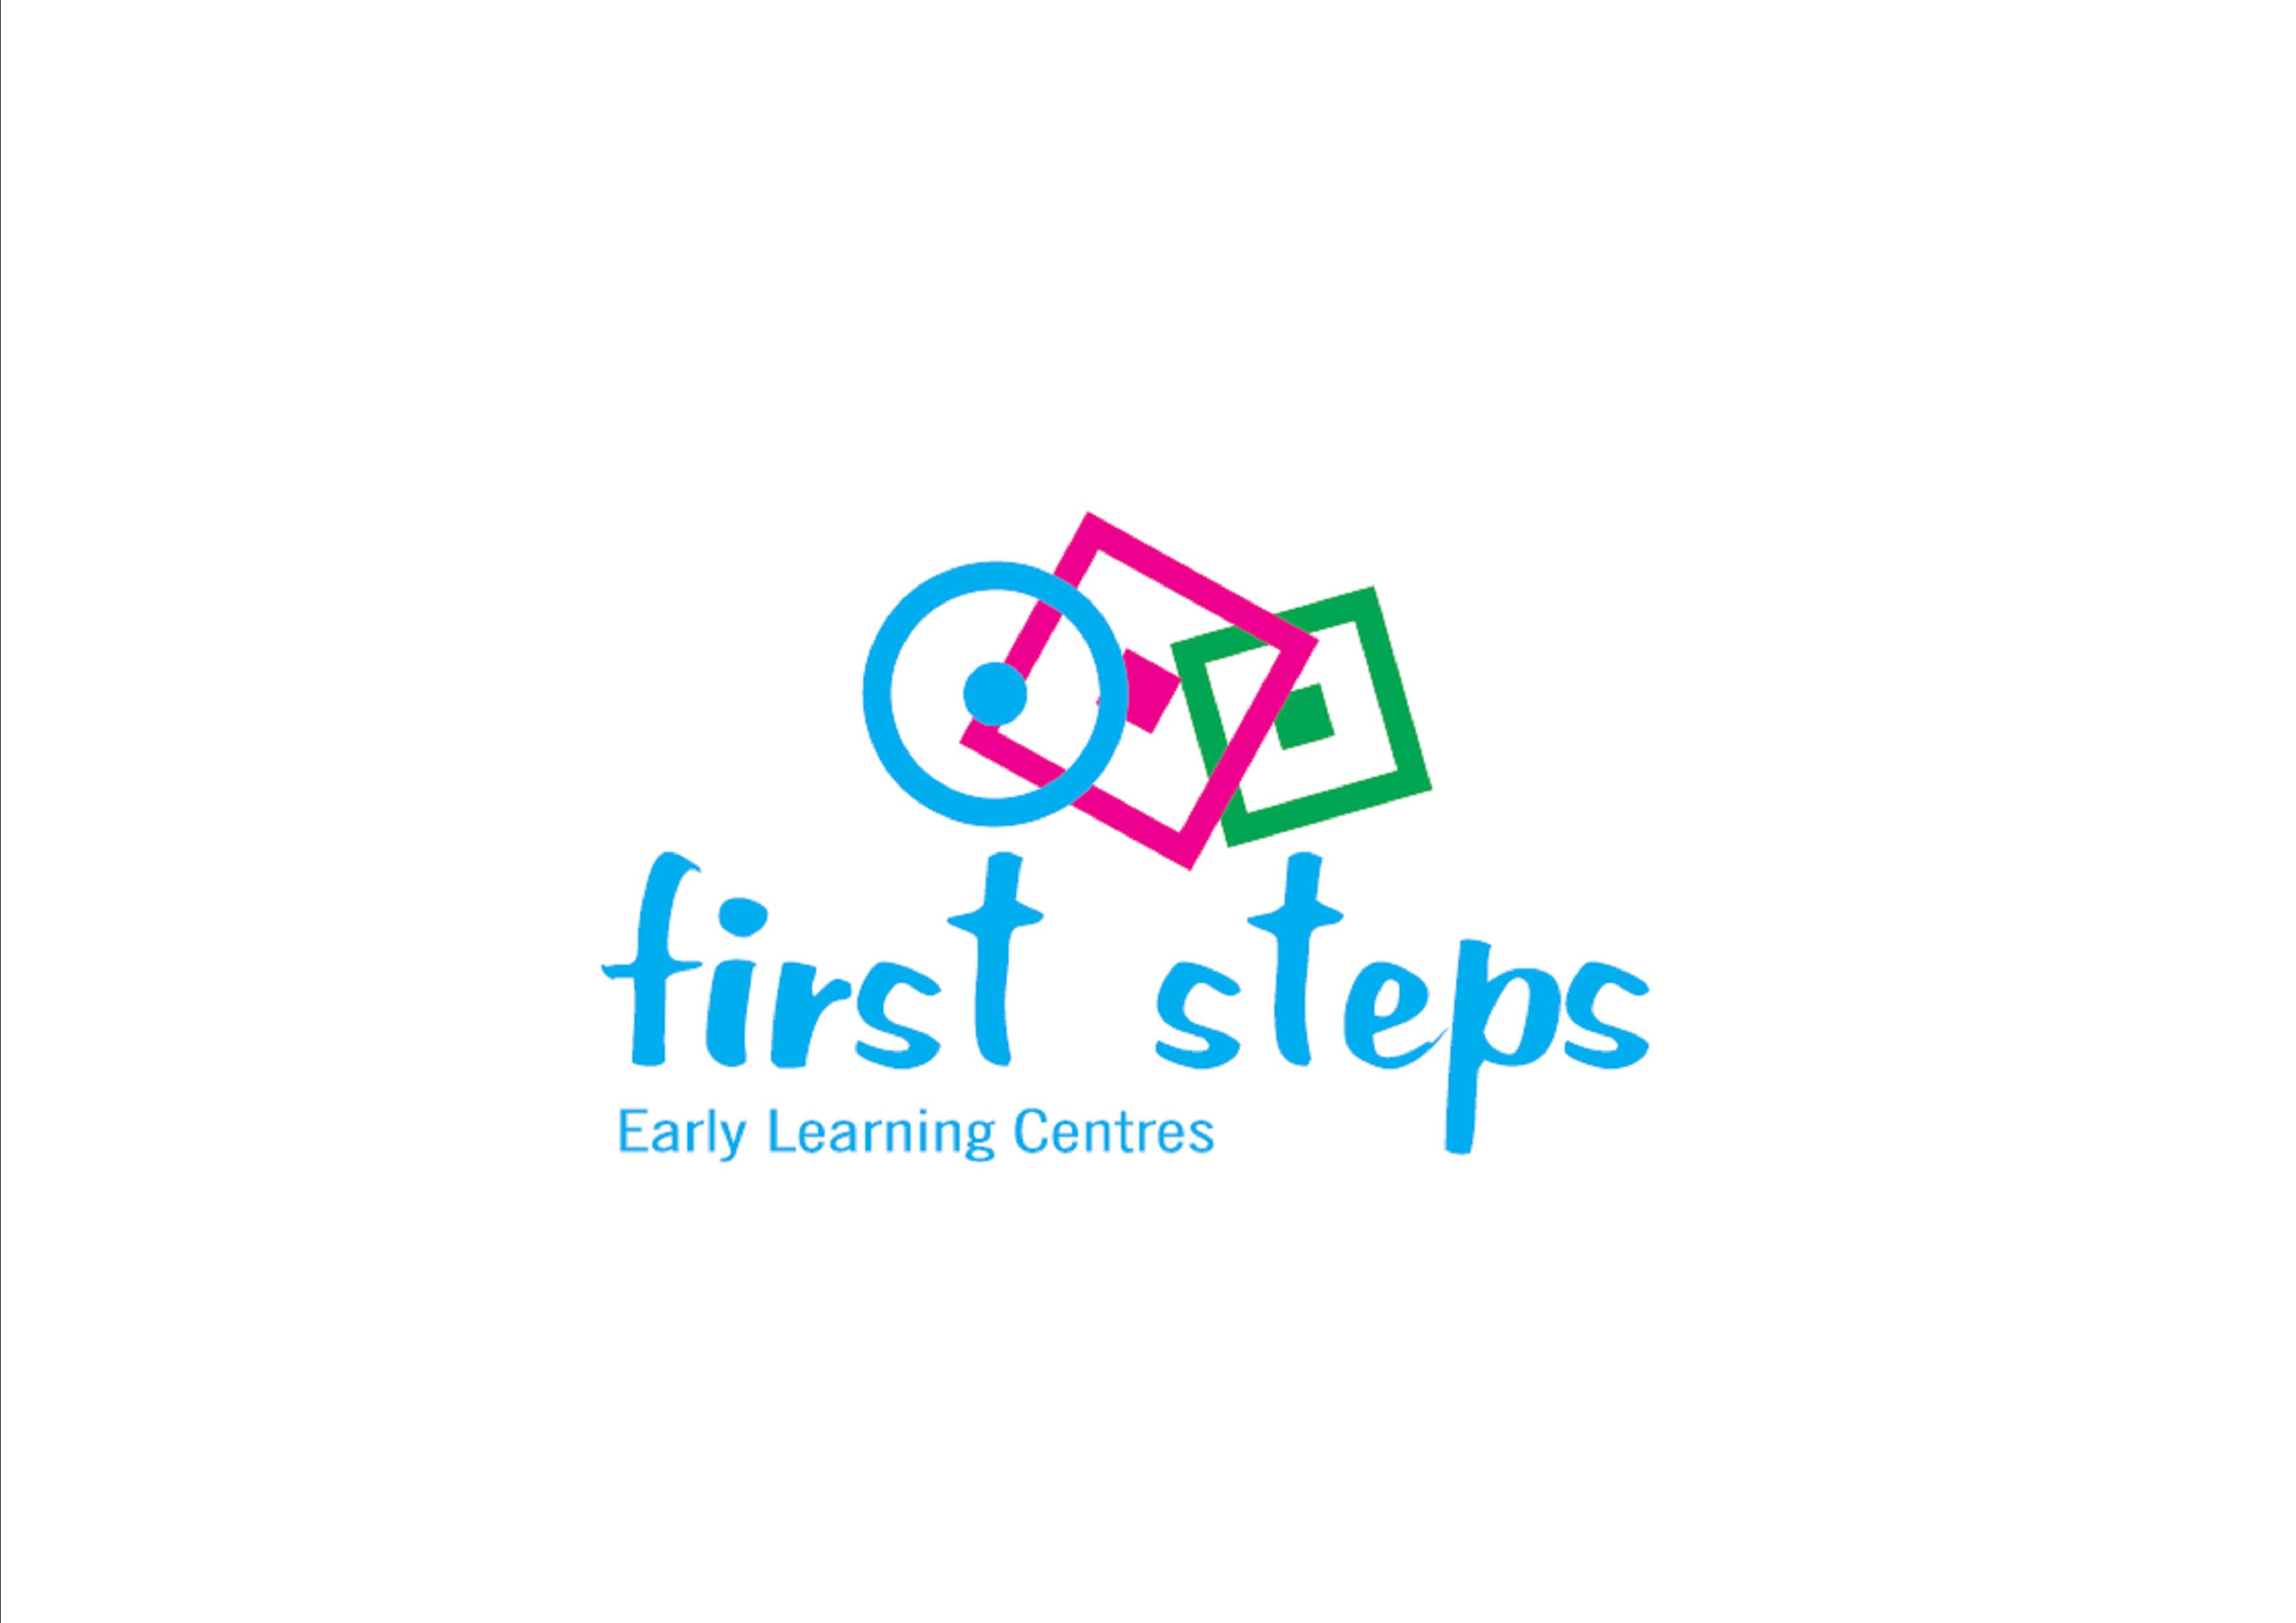 First Steps Early Learning Centres